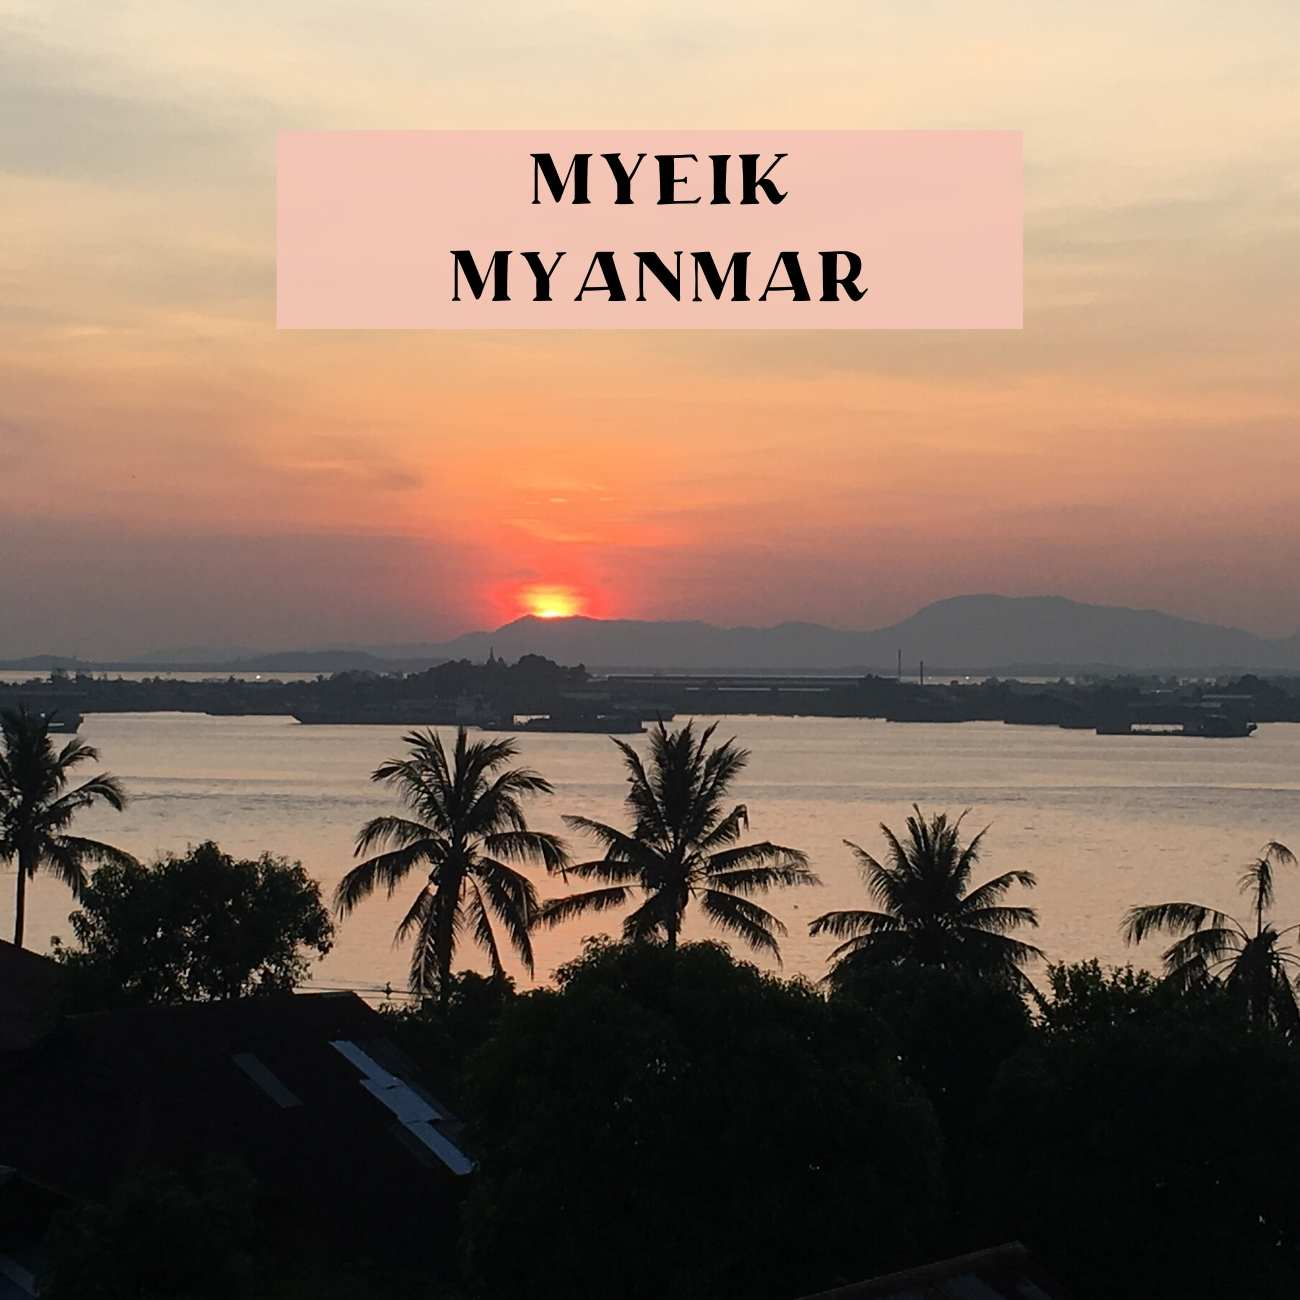 Things to do in Myeik